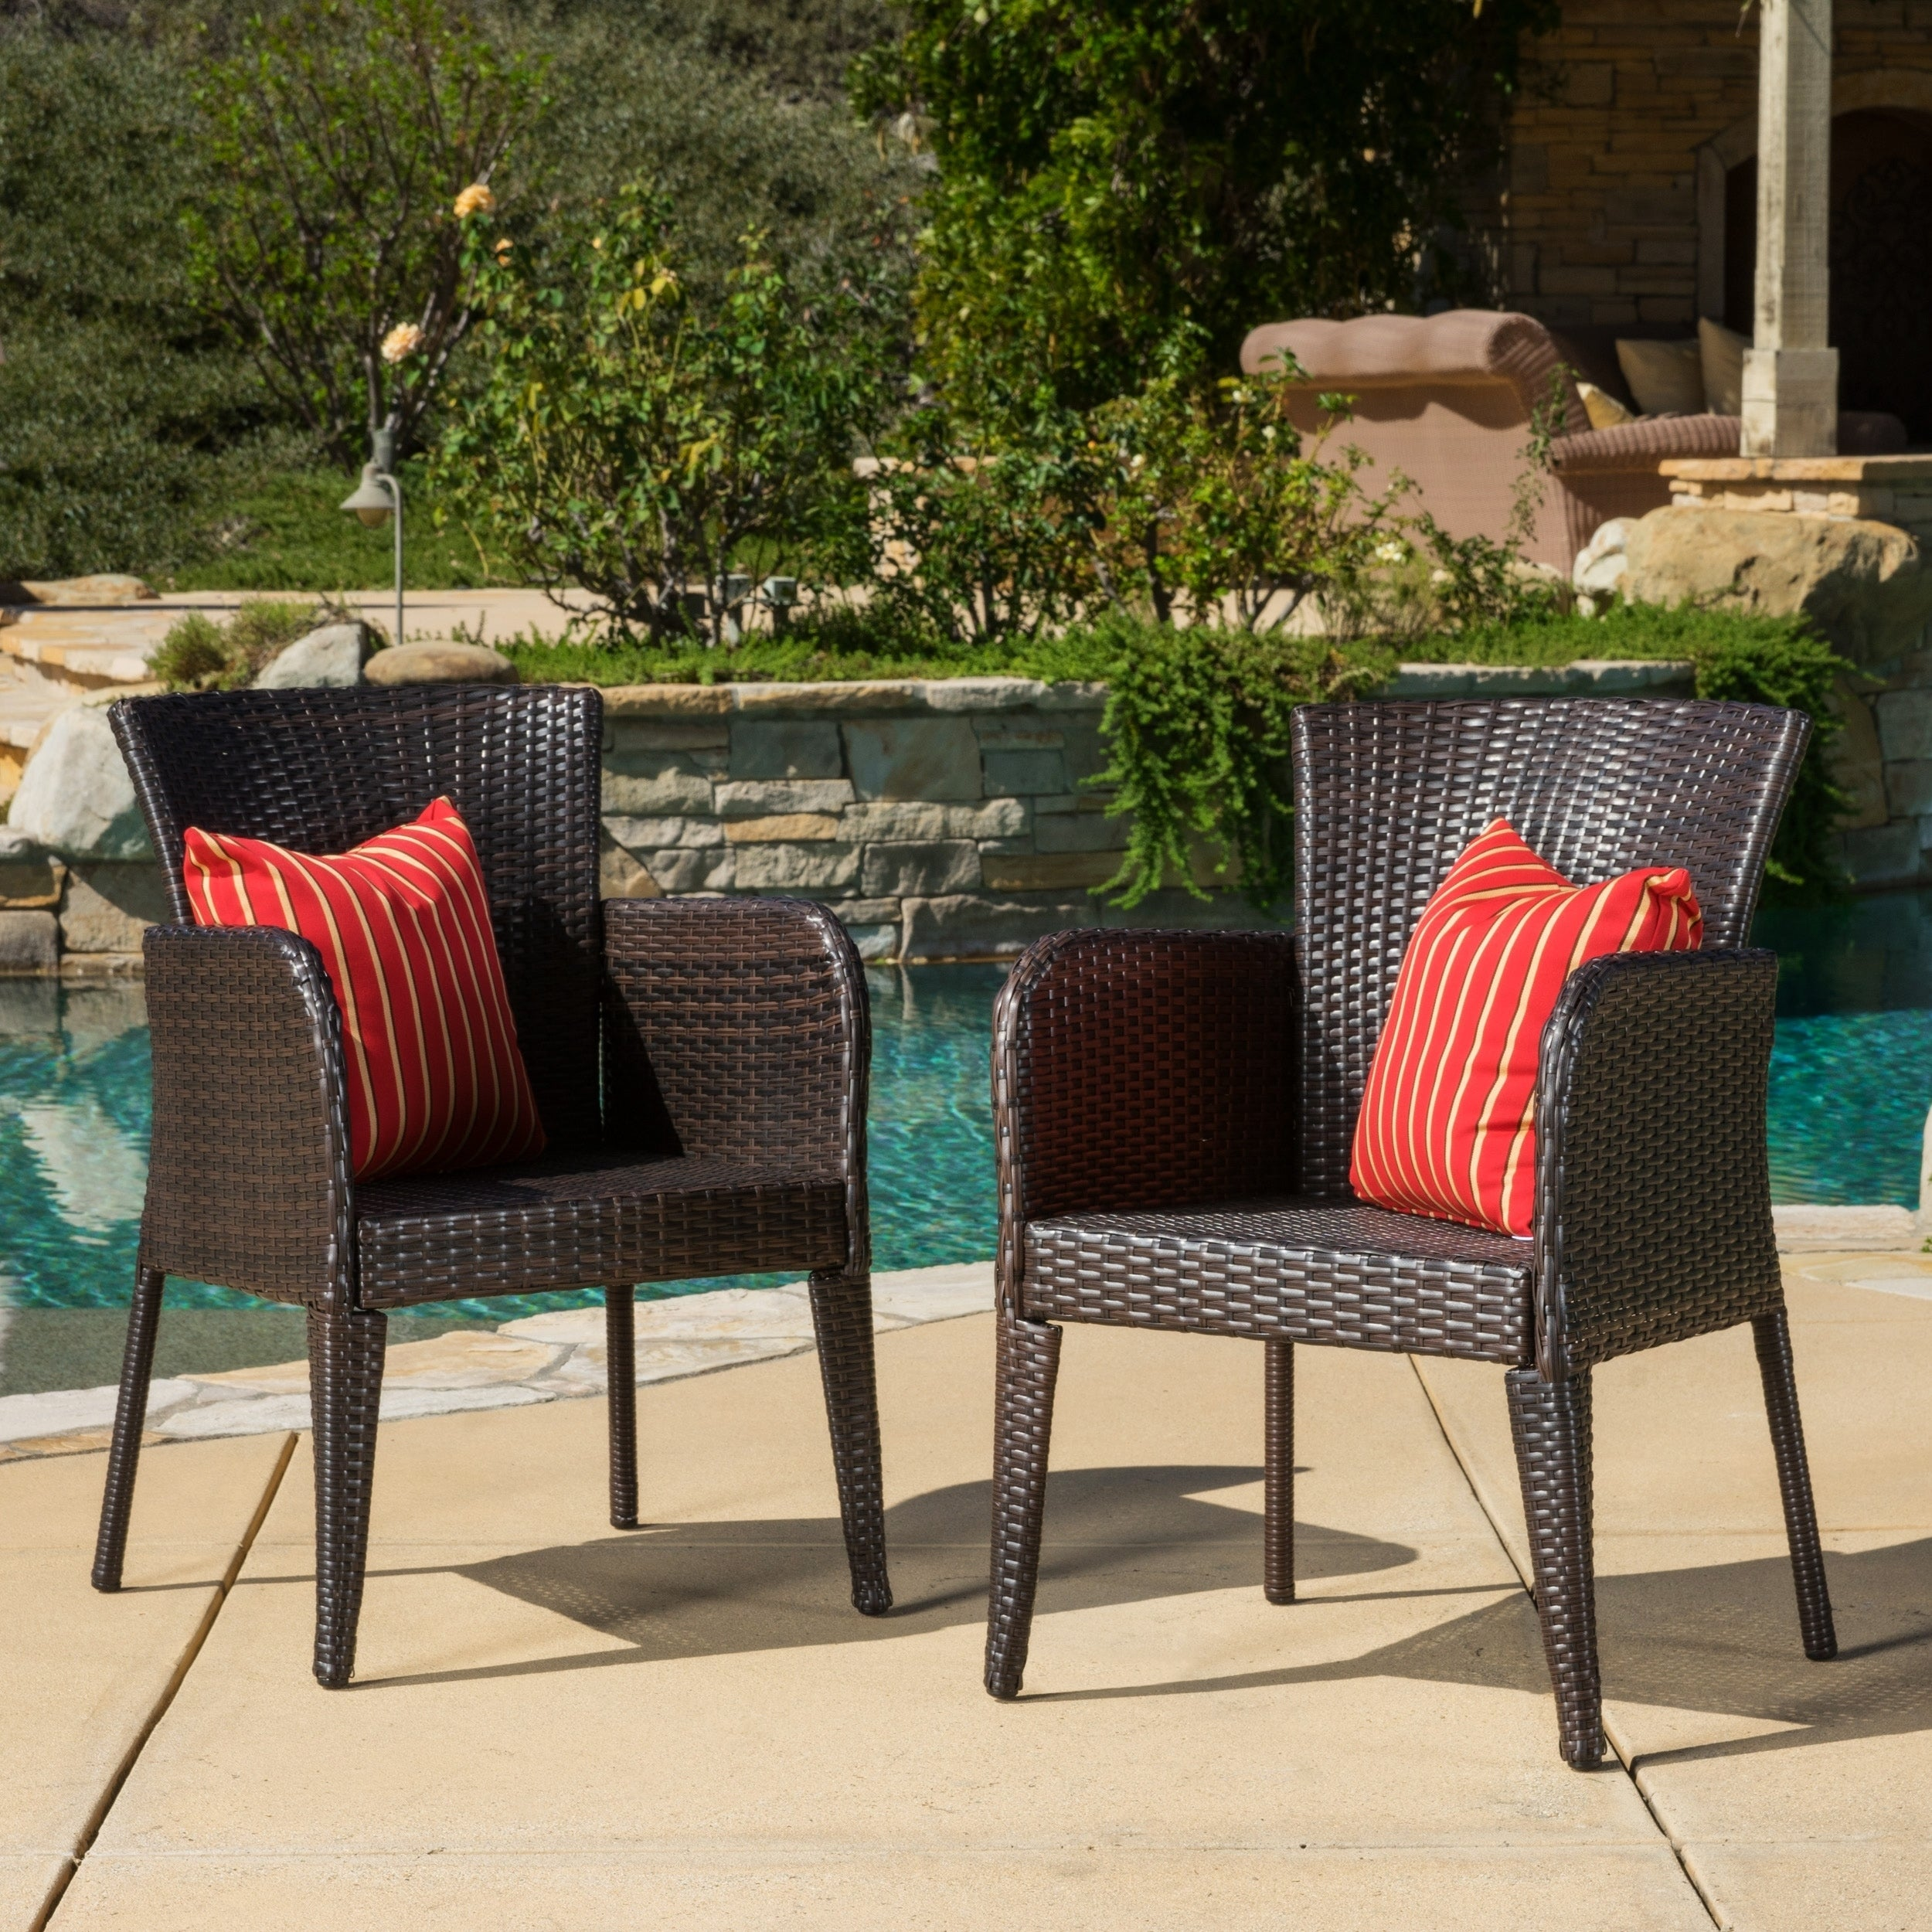 Anaya Outdoor Wicker Dining Chair Set Of 2 By Christopher Knight Home N A